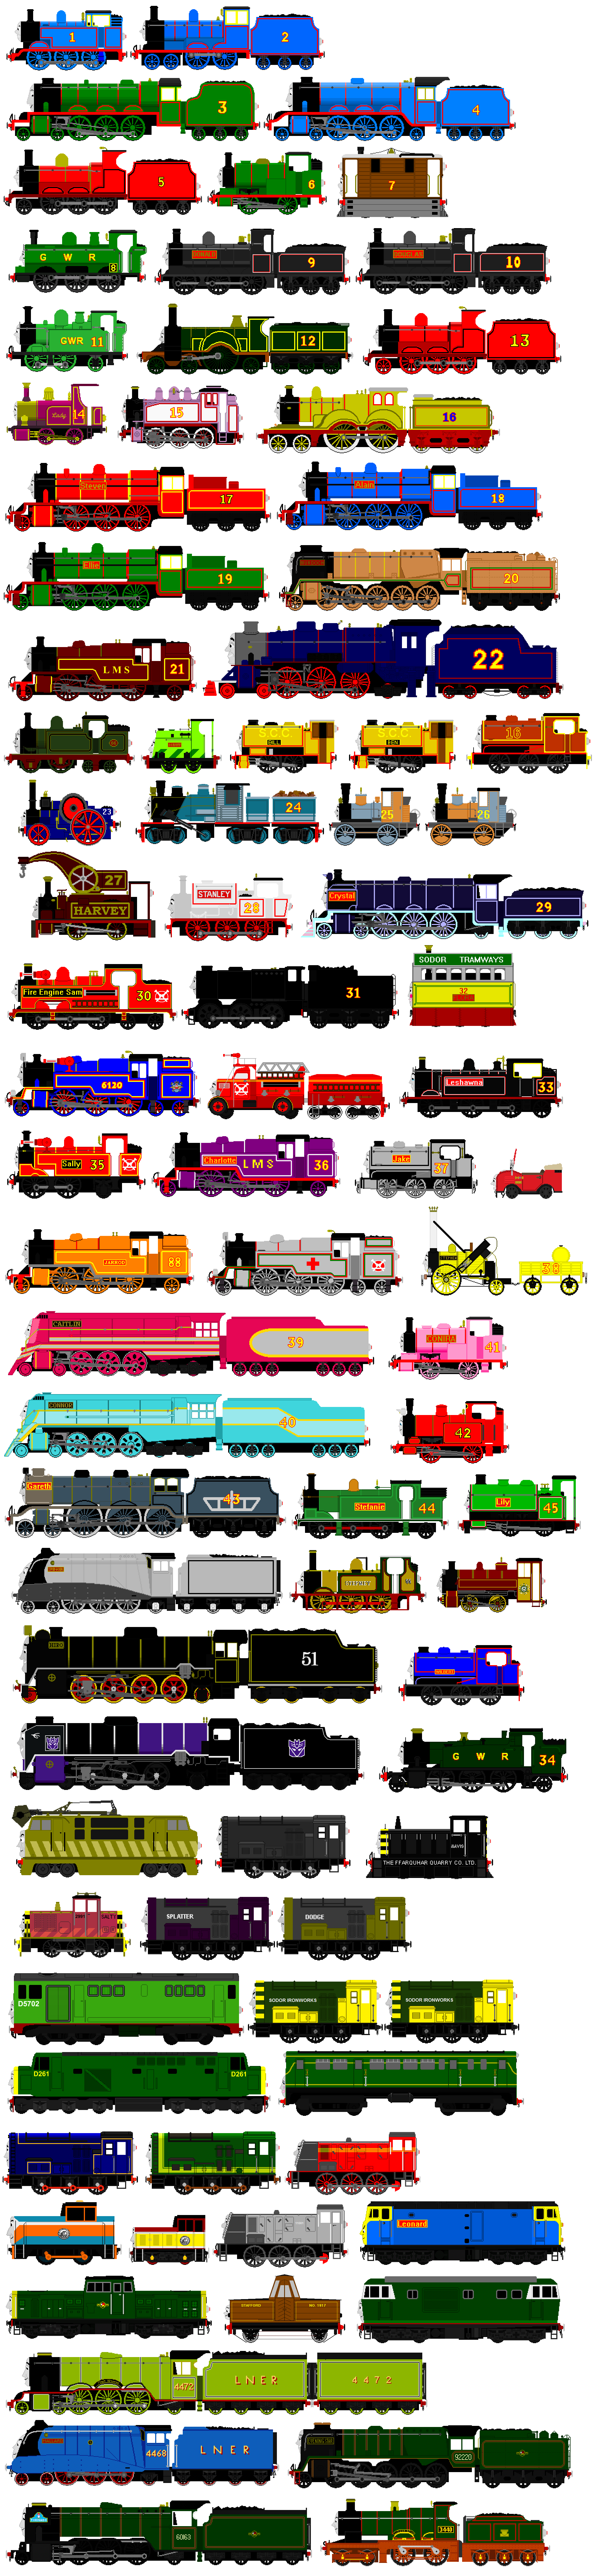 Thomas and Friends Animated Characters 10 by JamesFan1991 on